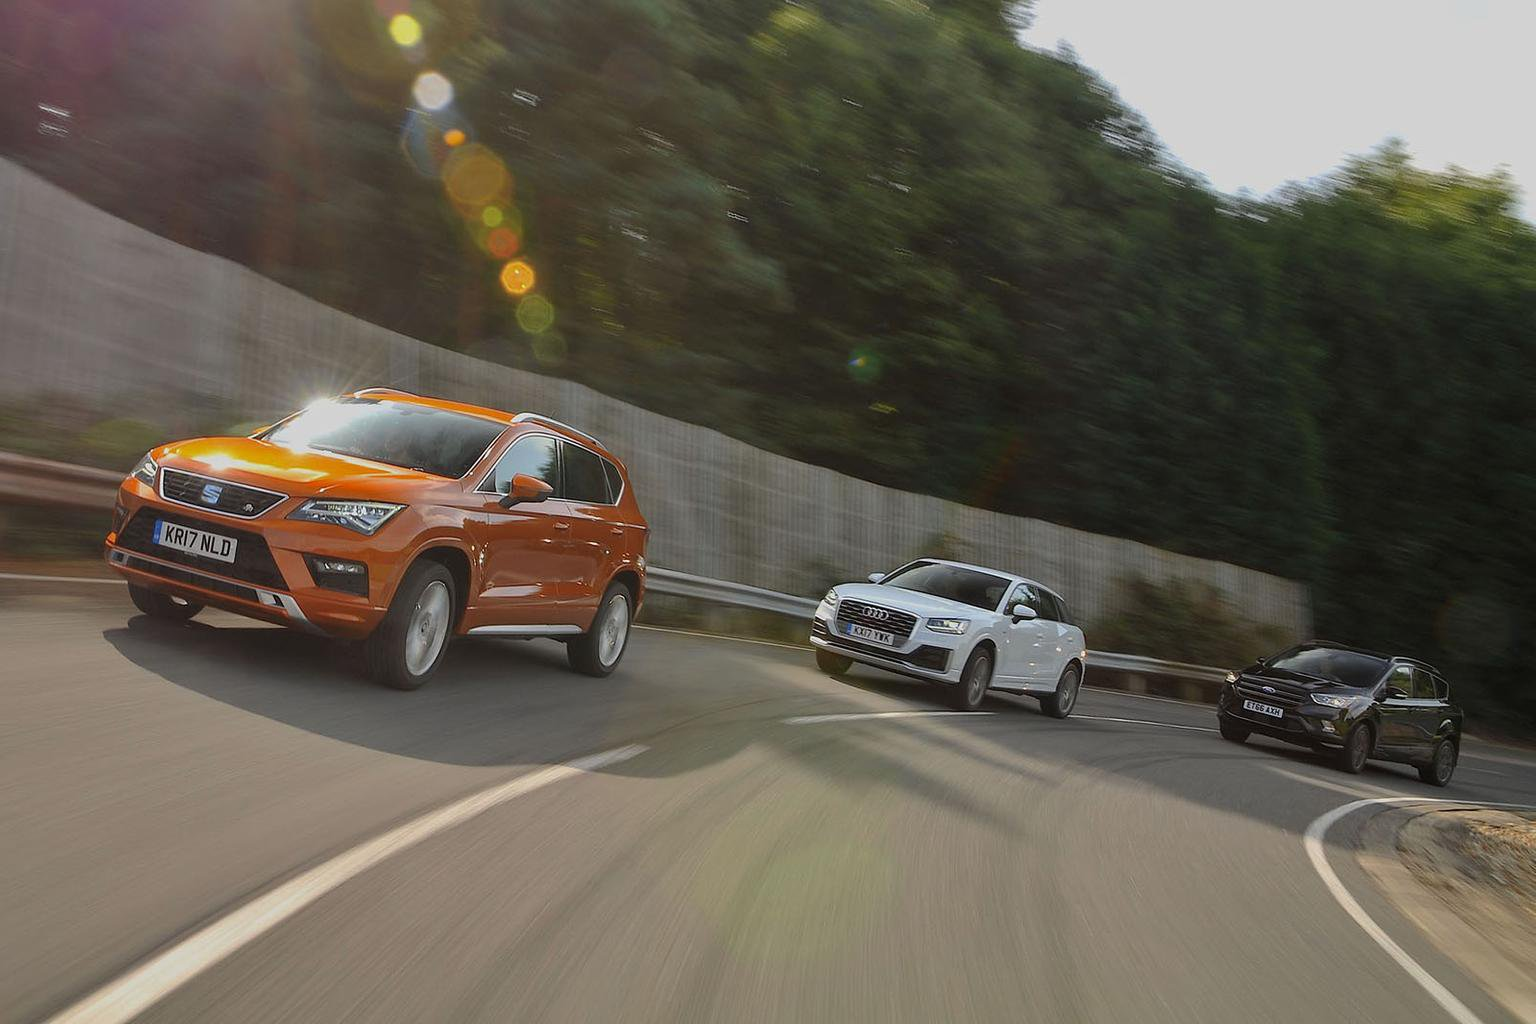 New Seat Ateca vs Audi Q2 vs Ford Kuga